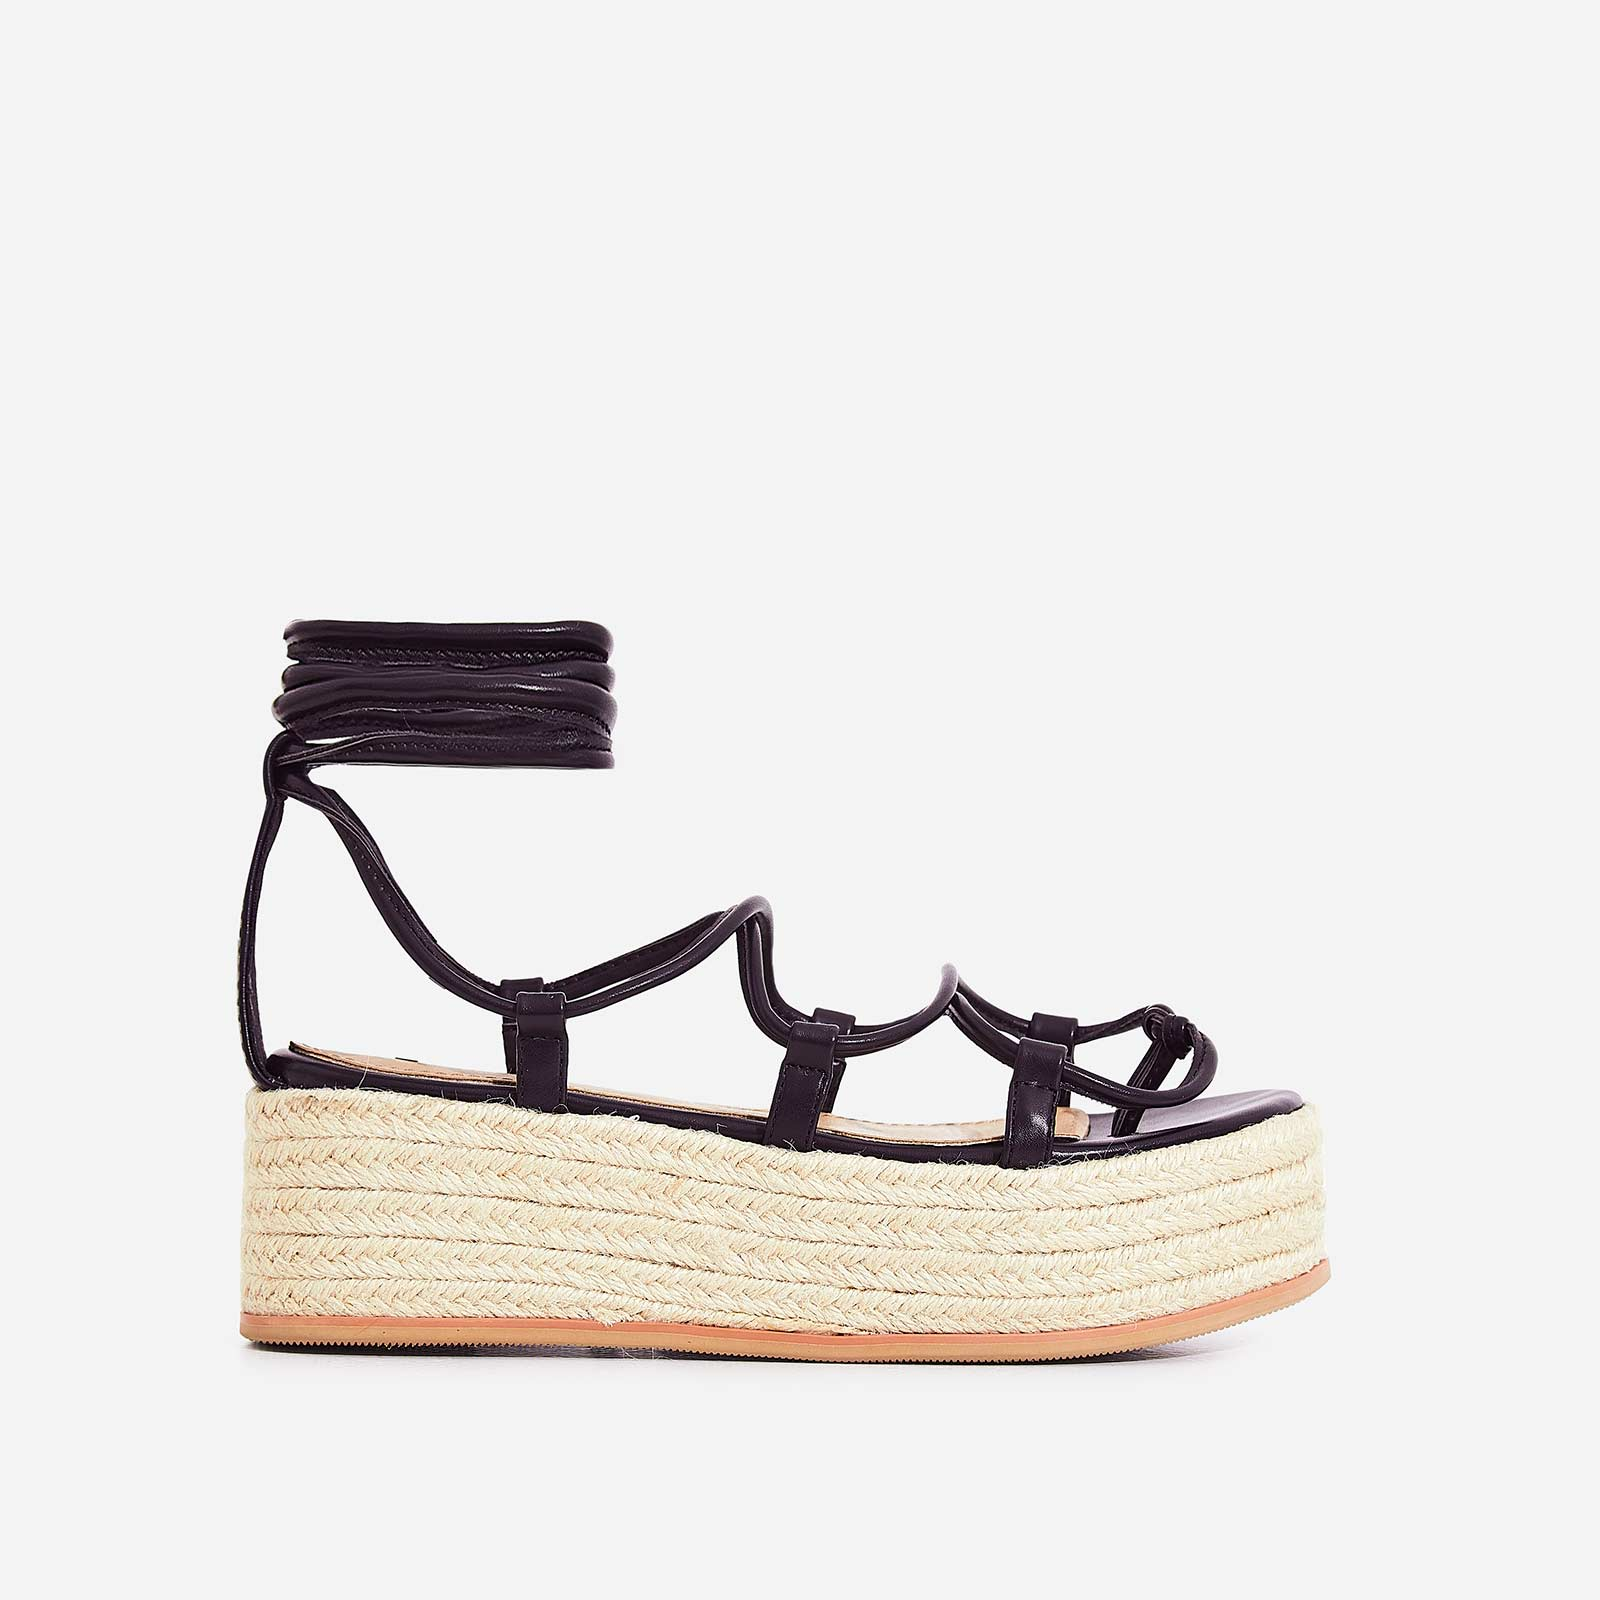 Sophina Lace Up Espadrille Flatform Sandal In Black Faux Leather